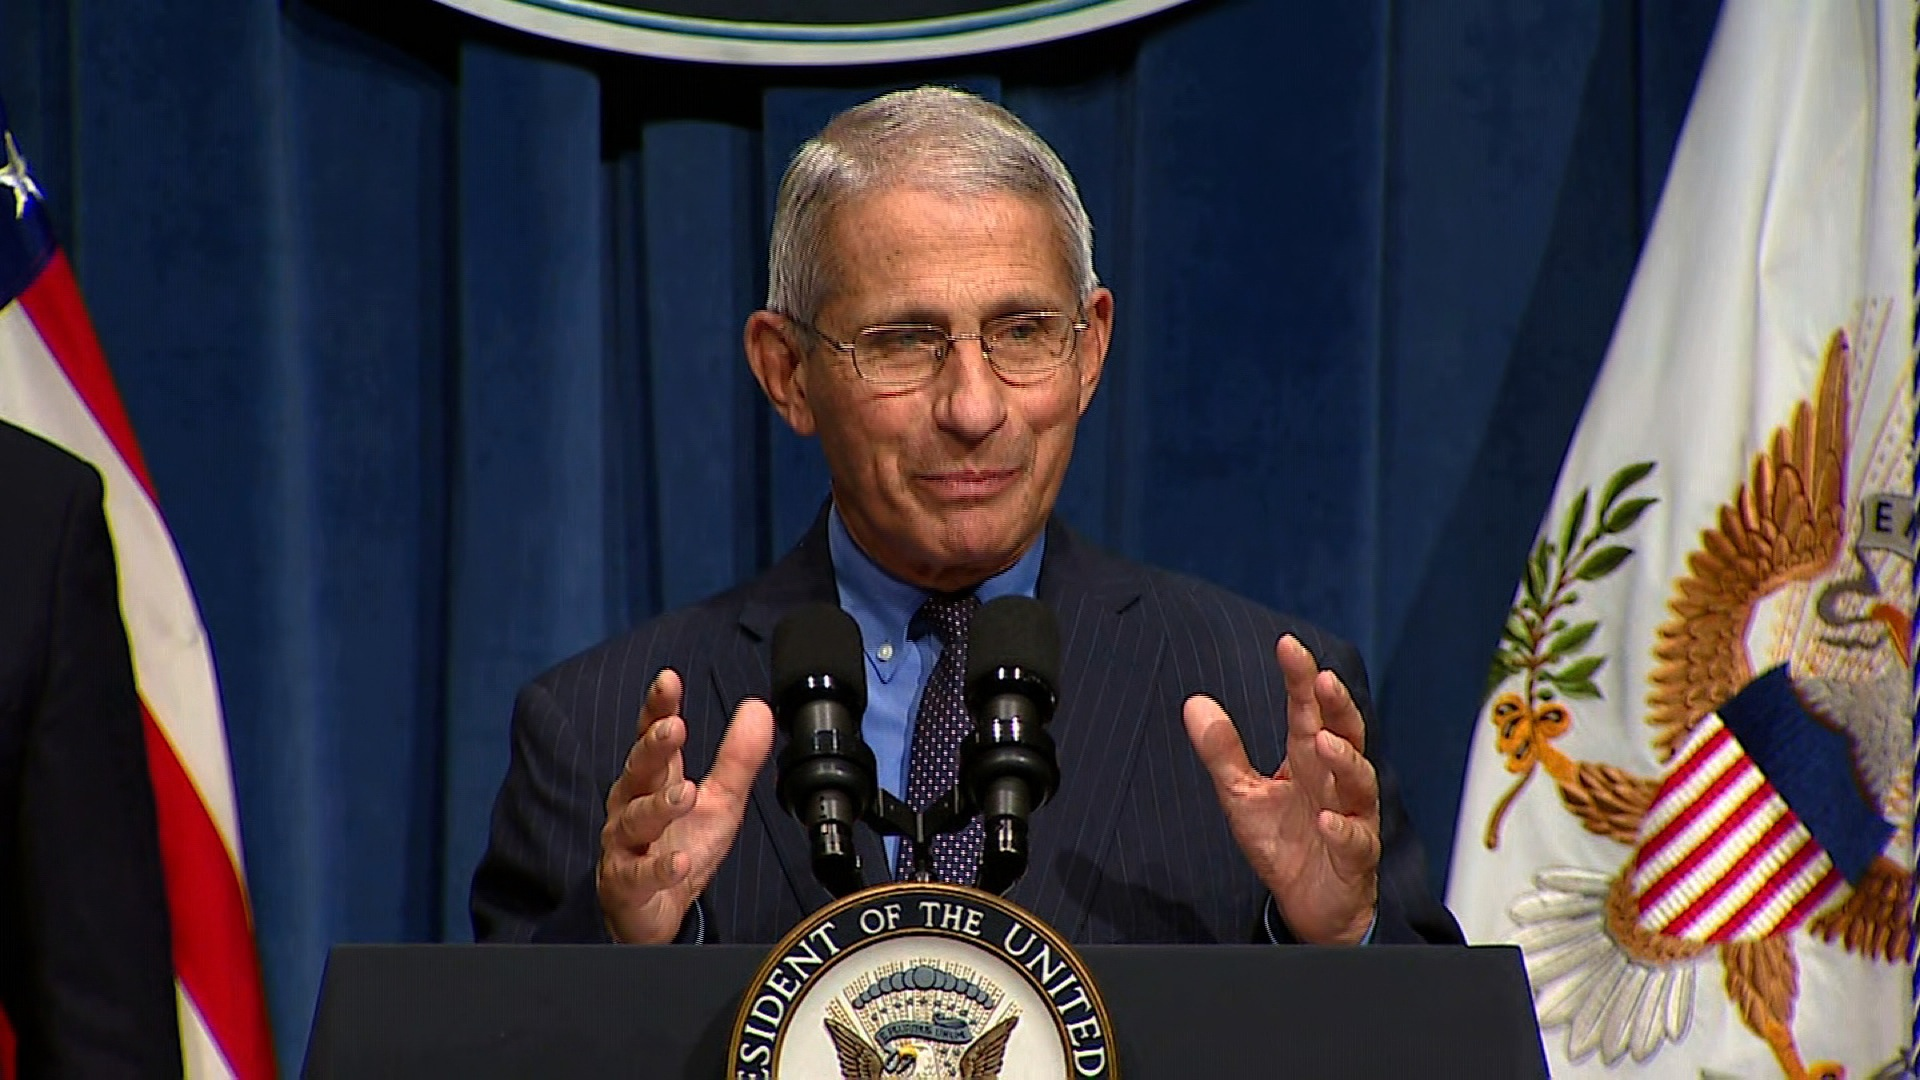 Dr. Anthony Fauci, the nation's top infectious disease expert, speaks at a coronavirus task force briefing in Washington, DC, on June 26.